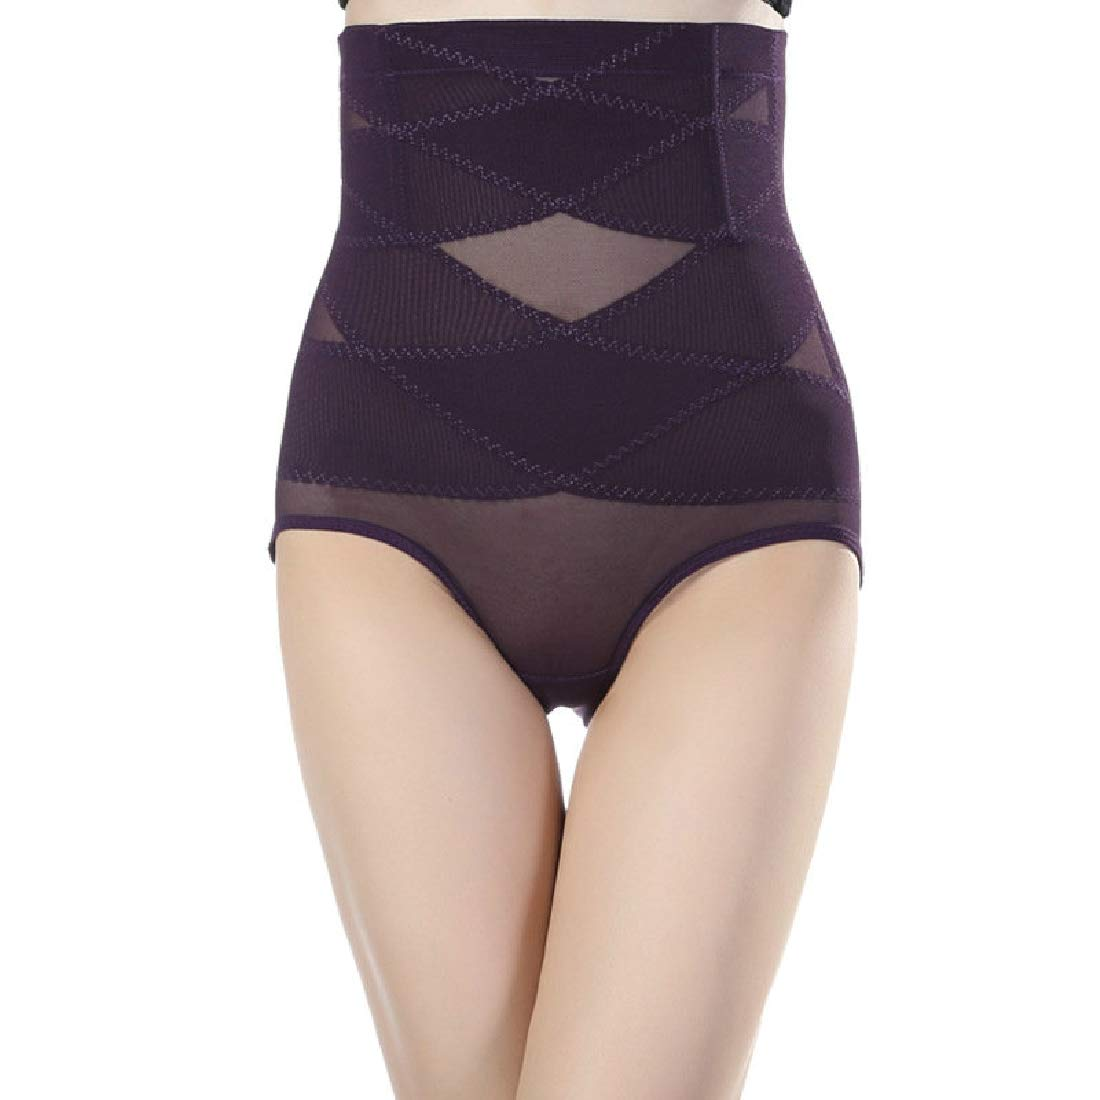 Domple Womens High Rise Tummy Control Butt Lift No Trace Slim Fit Skinny Panty